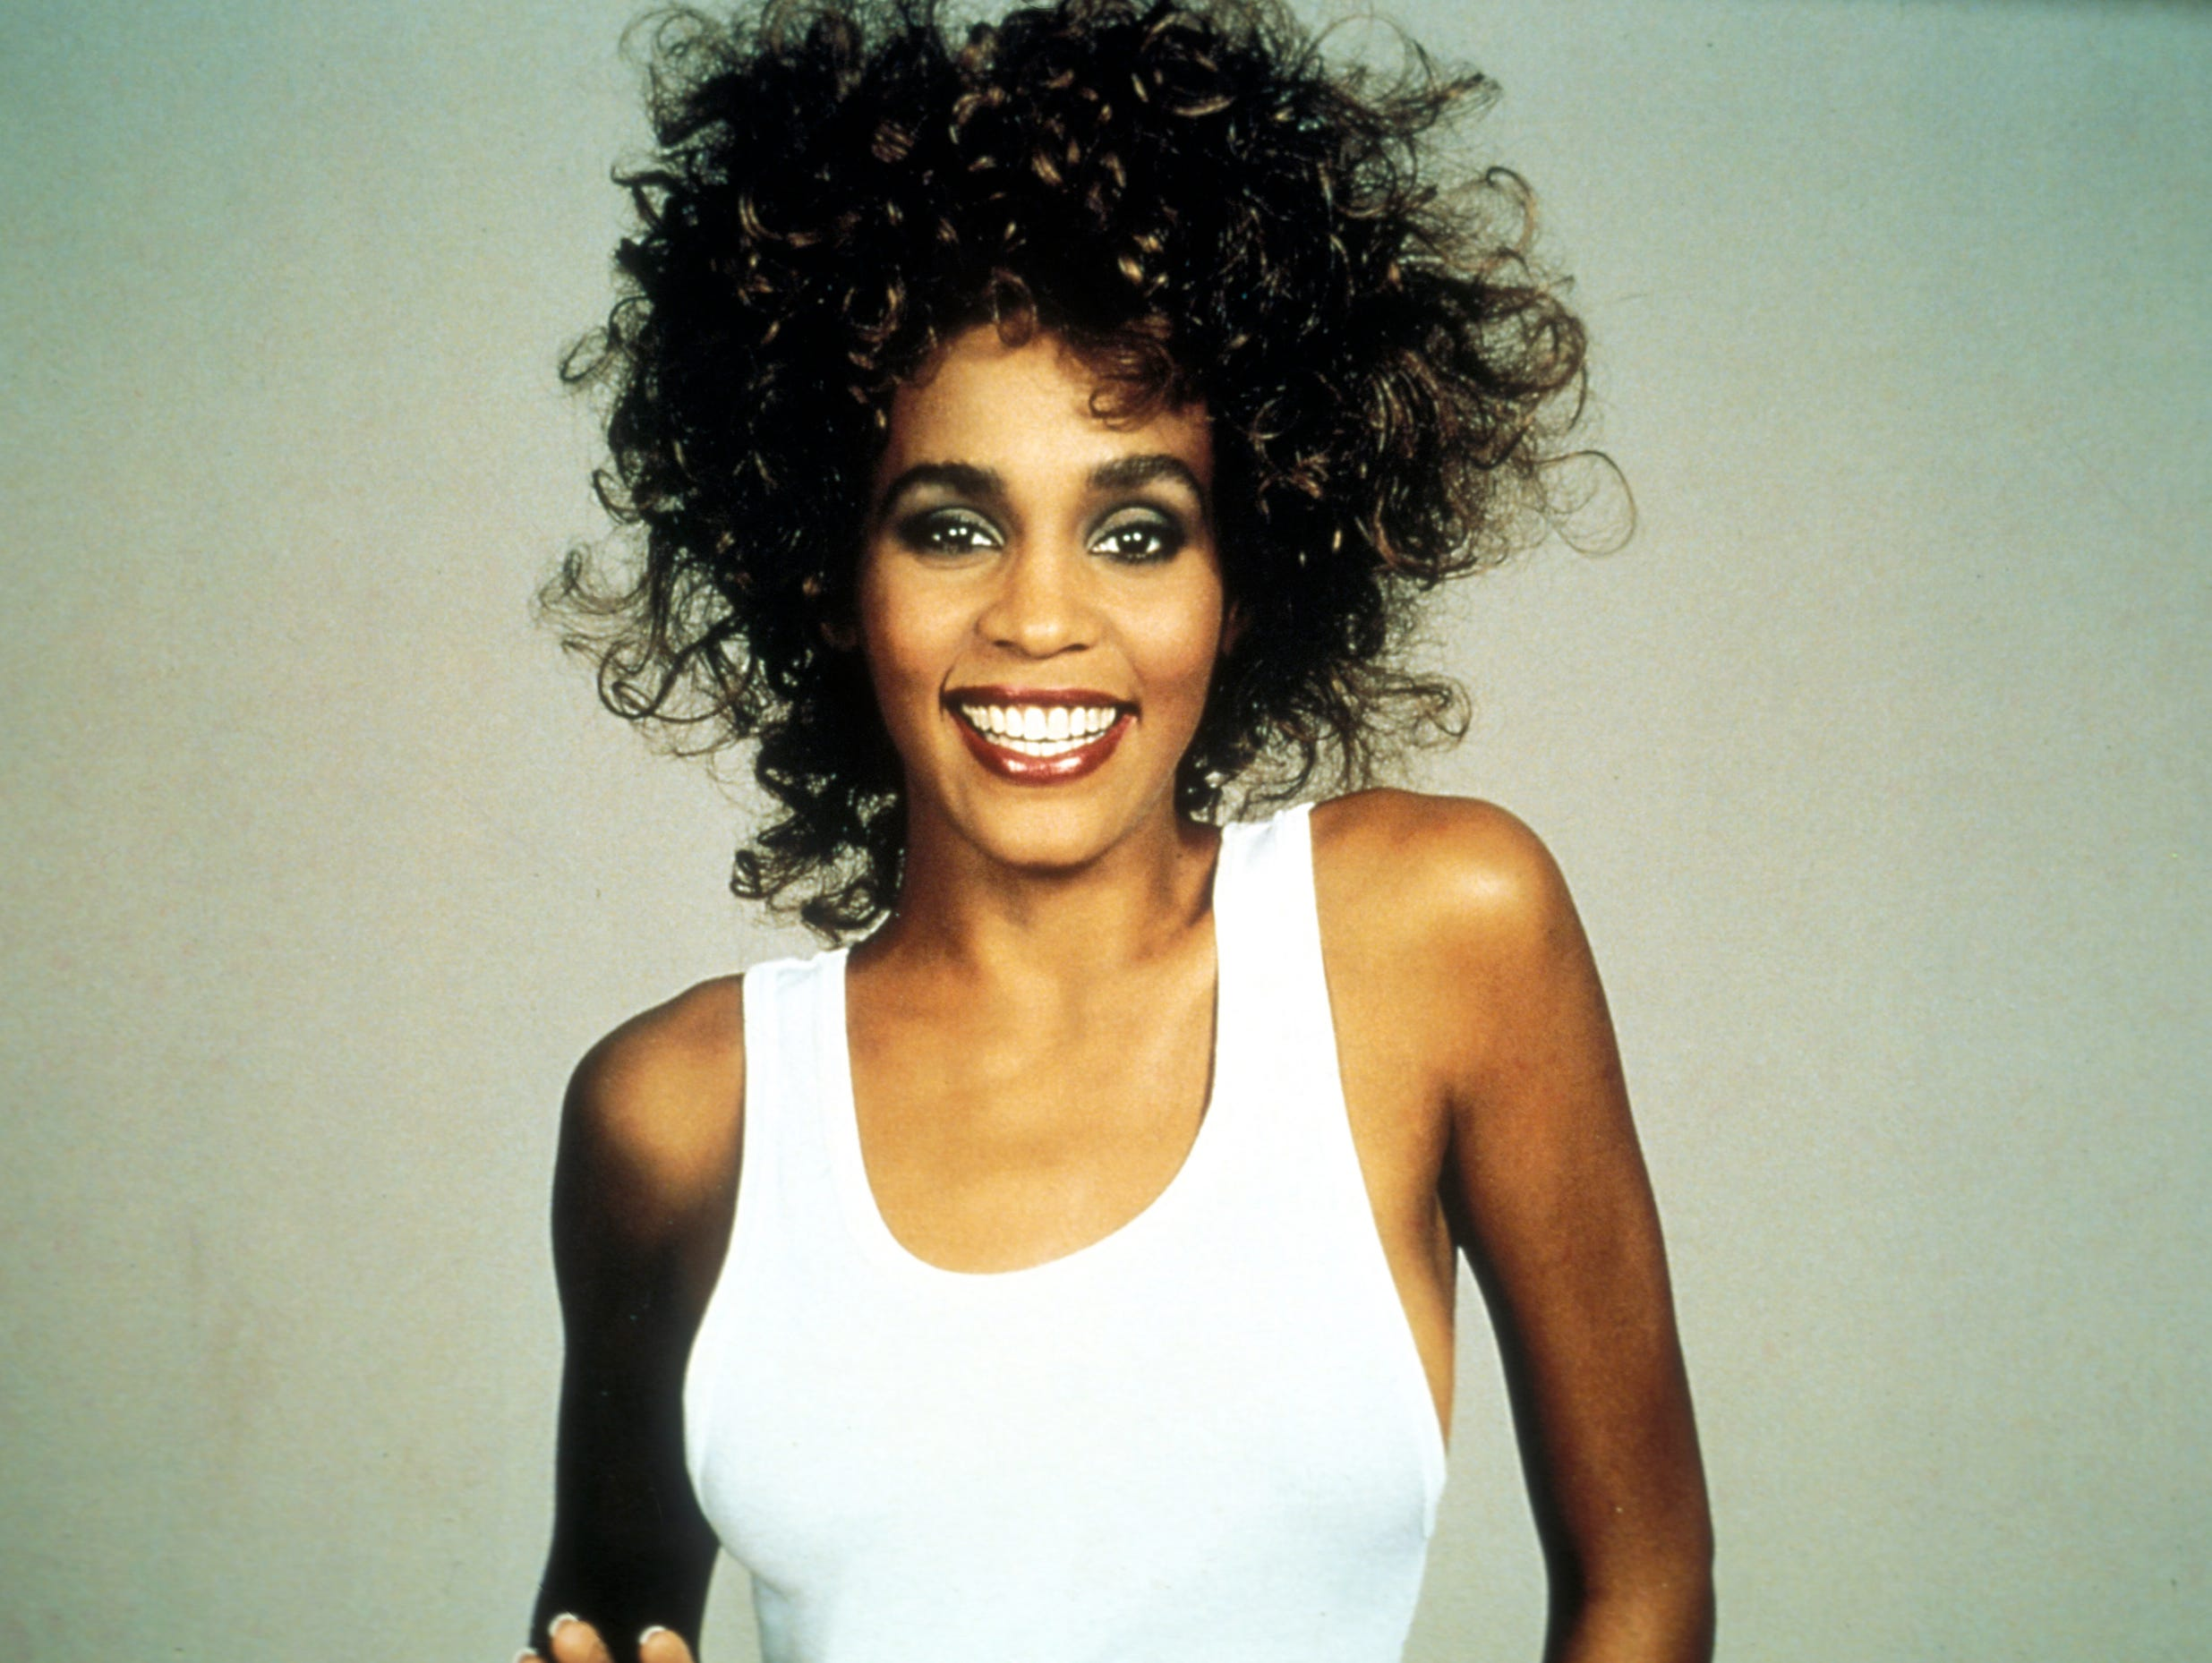 The late Whitney Houston in 1987.